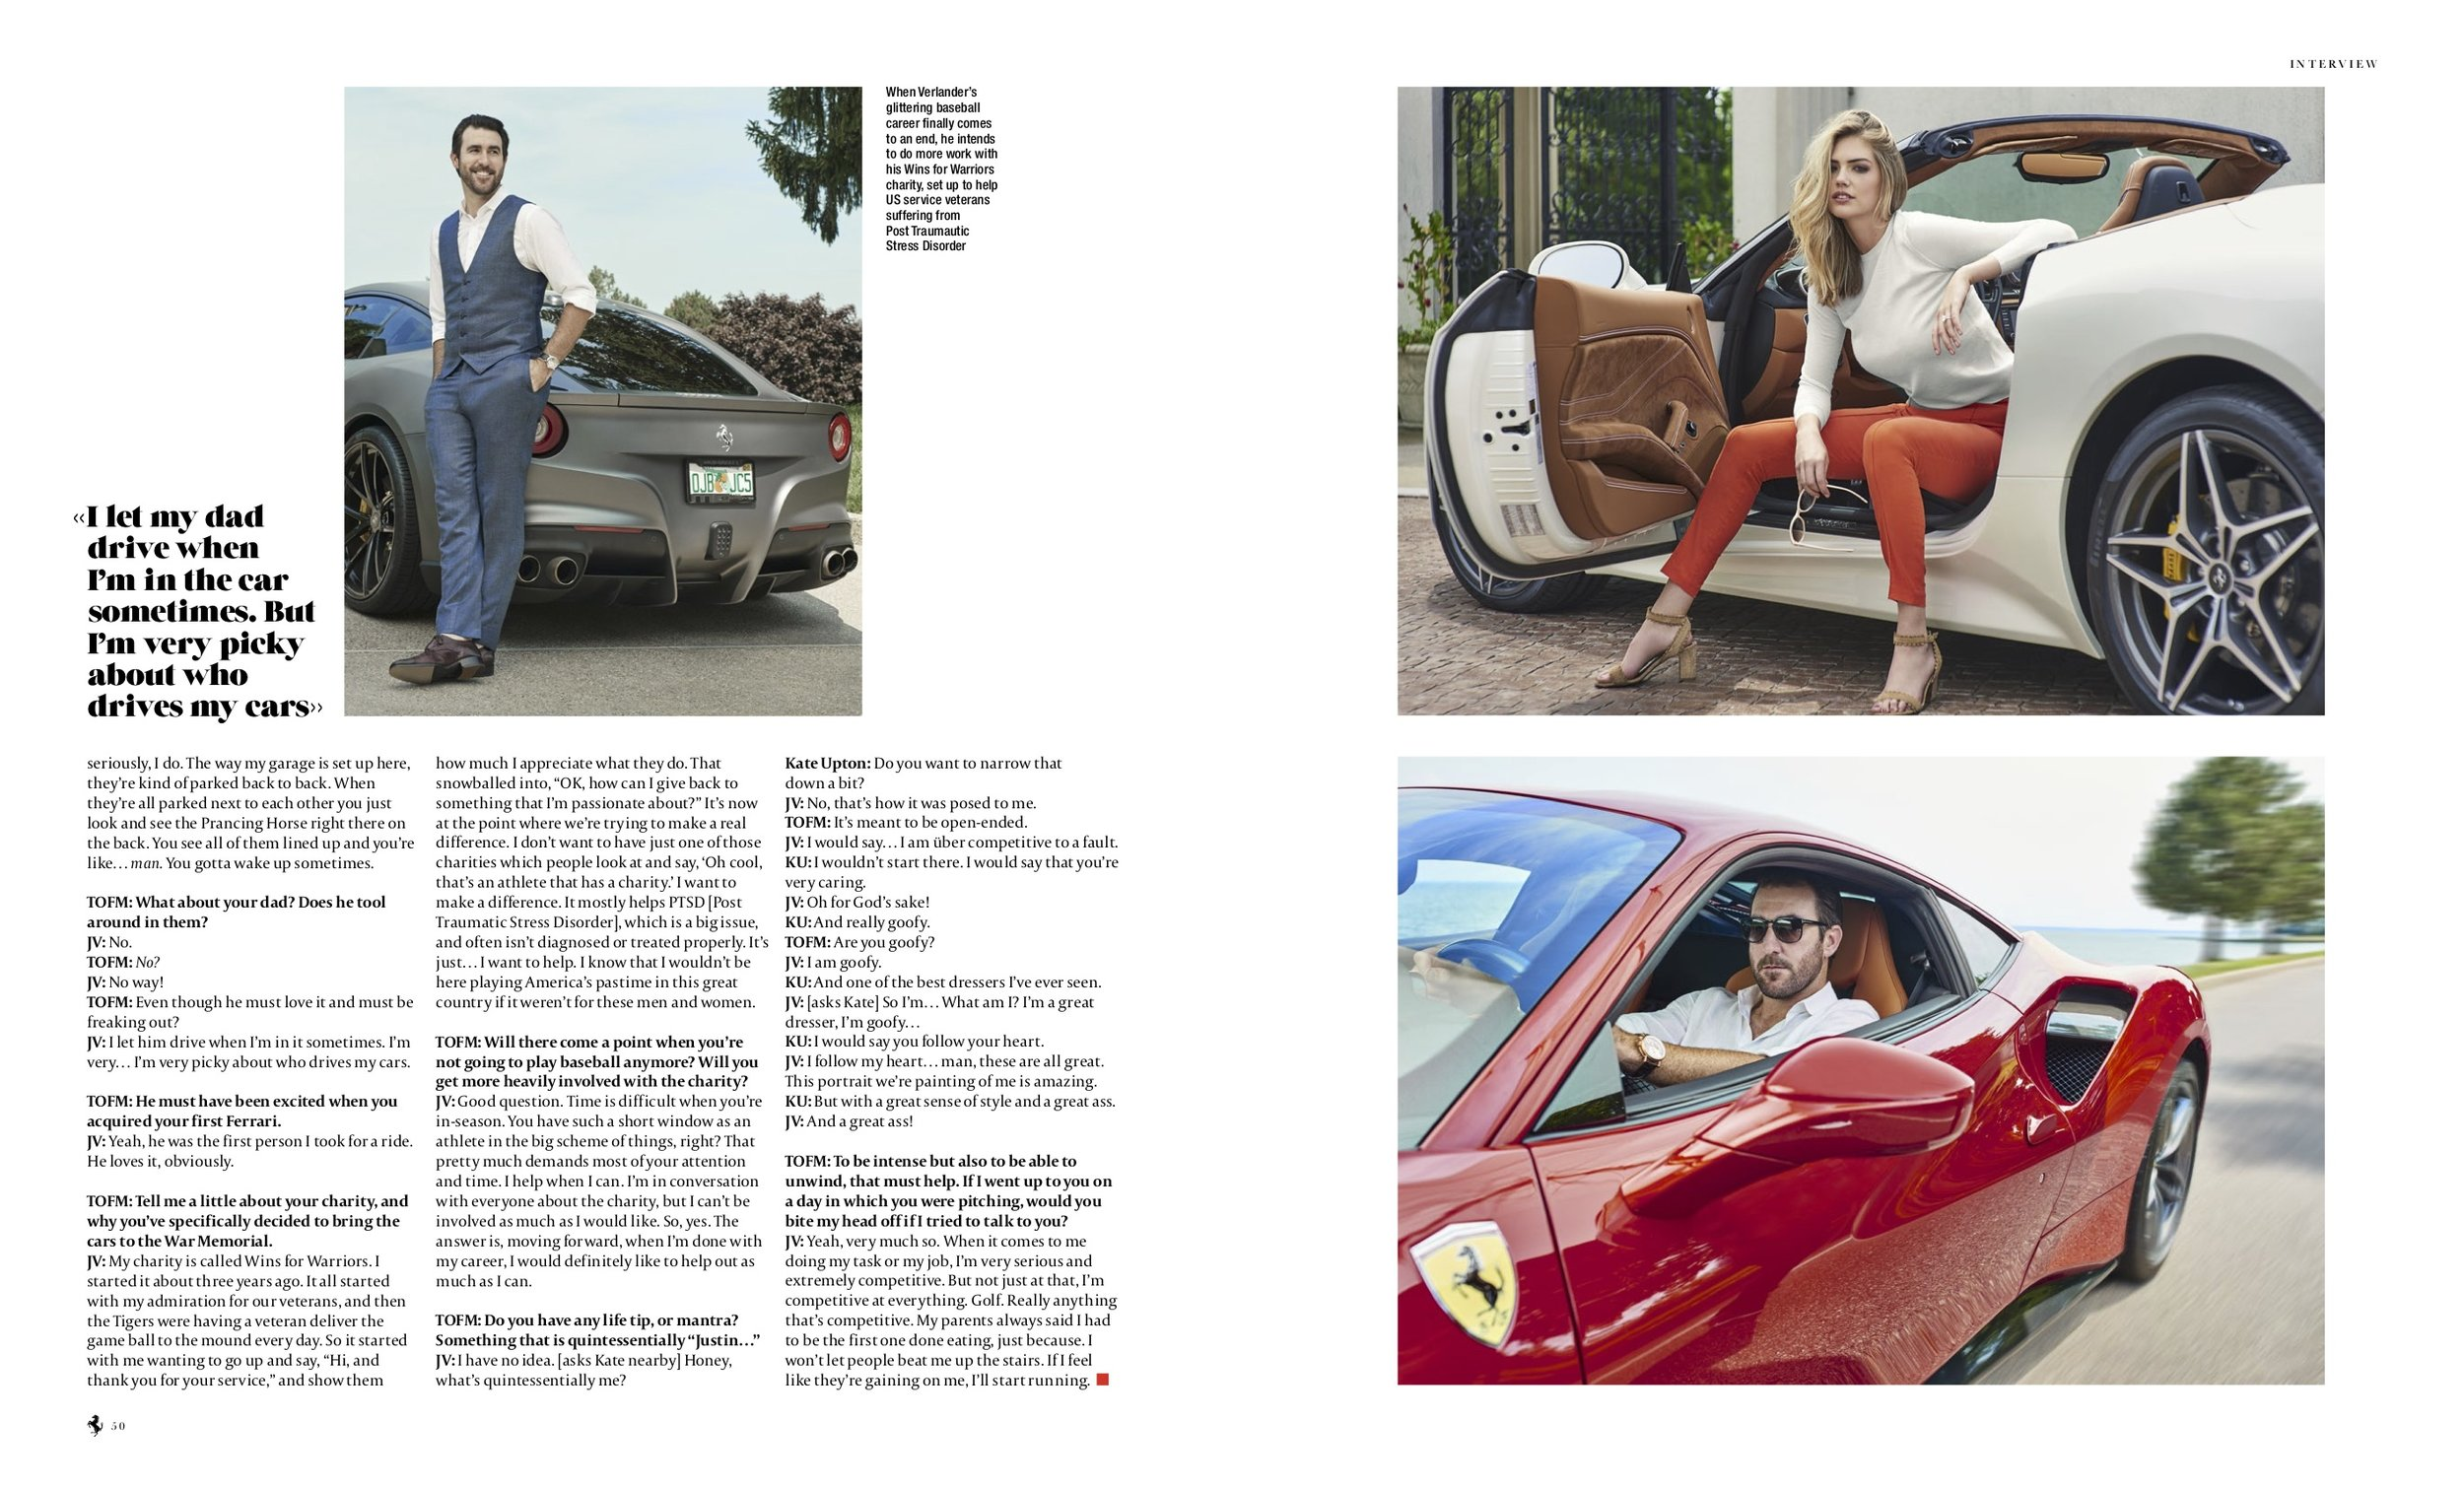 Kate  Upton & Justin Verlander article from Ferrari Magazine  JPEG  copy.jpg